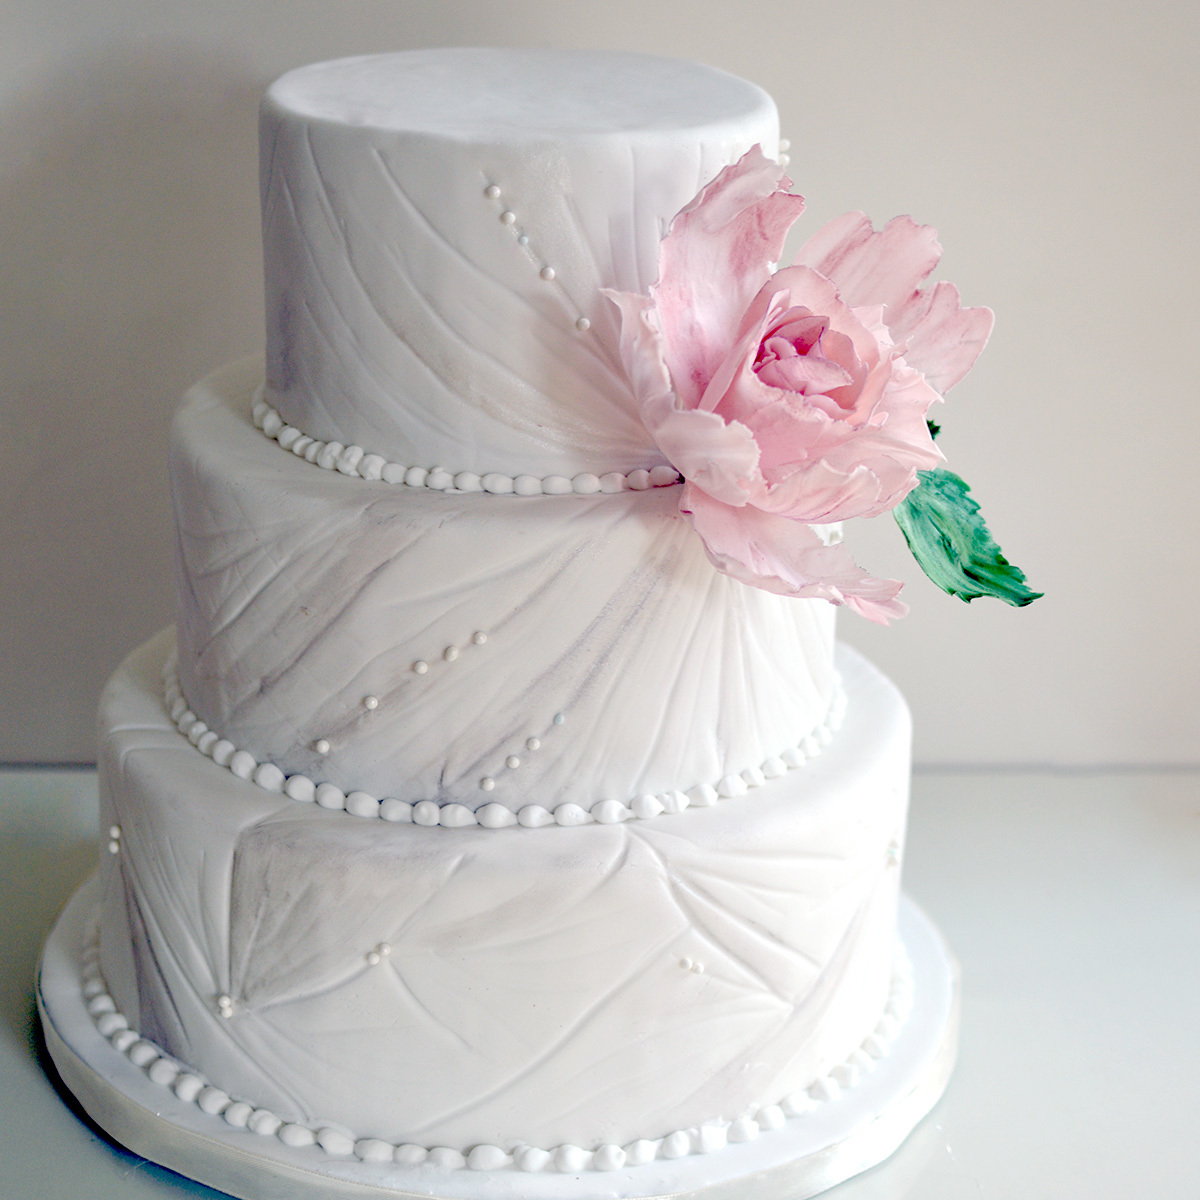 Quilted textured white wedding cake